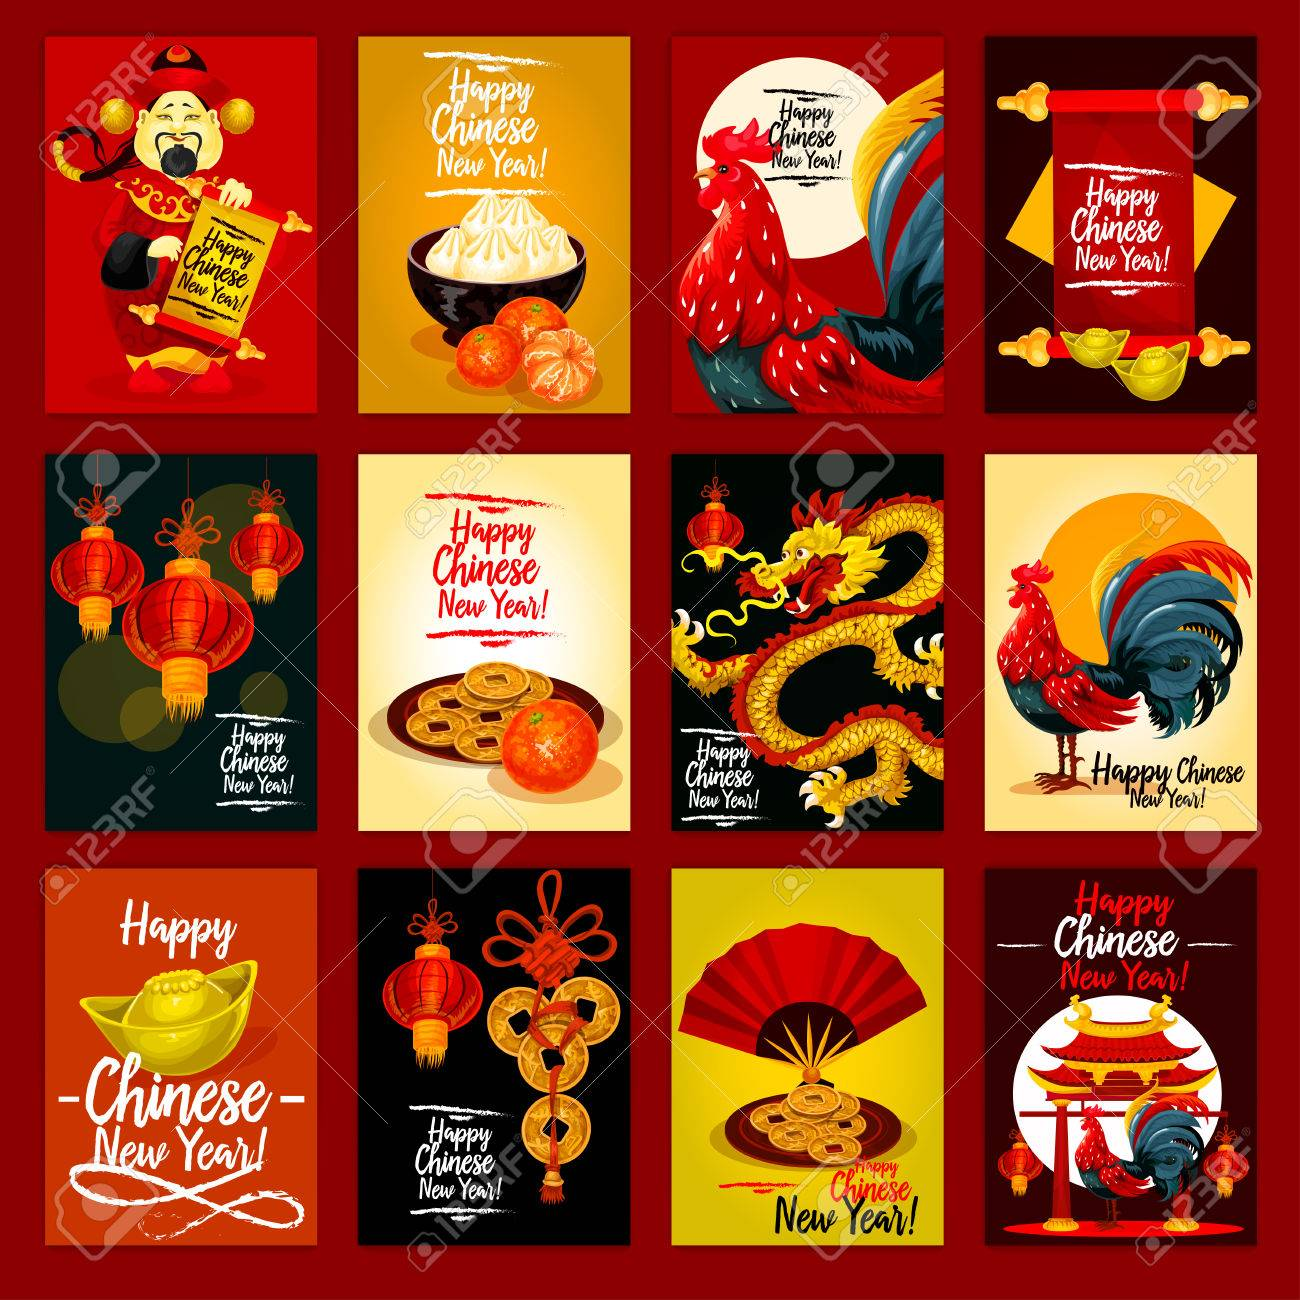 Chinese lunar new year greeting card set red lantern rooster chinese lunar new year greeting card set red lantern rooster golden coin m4hsunfo